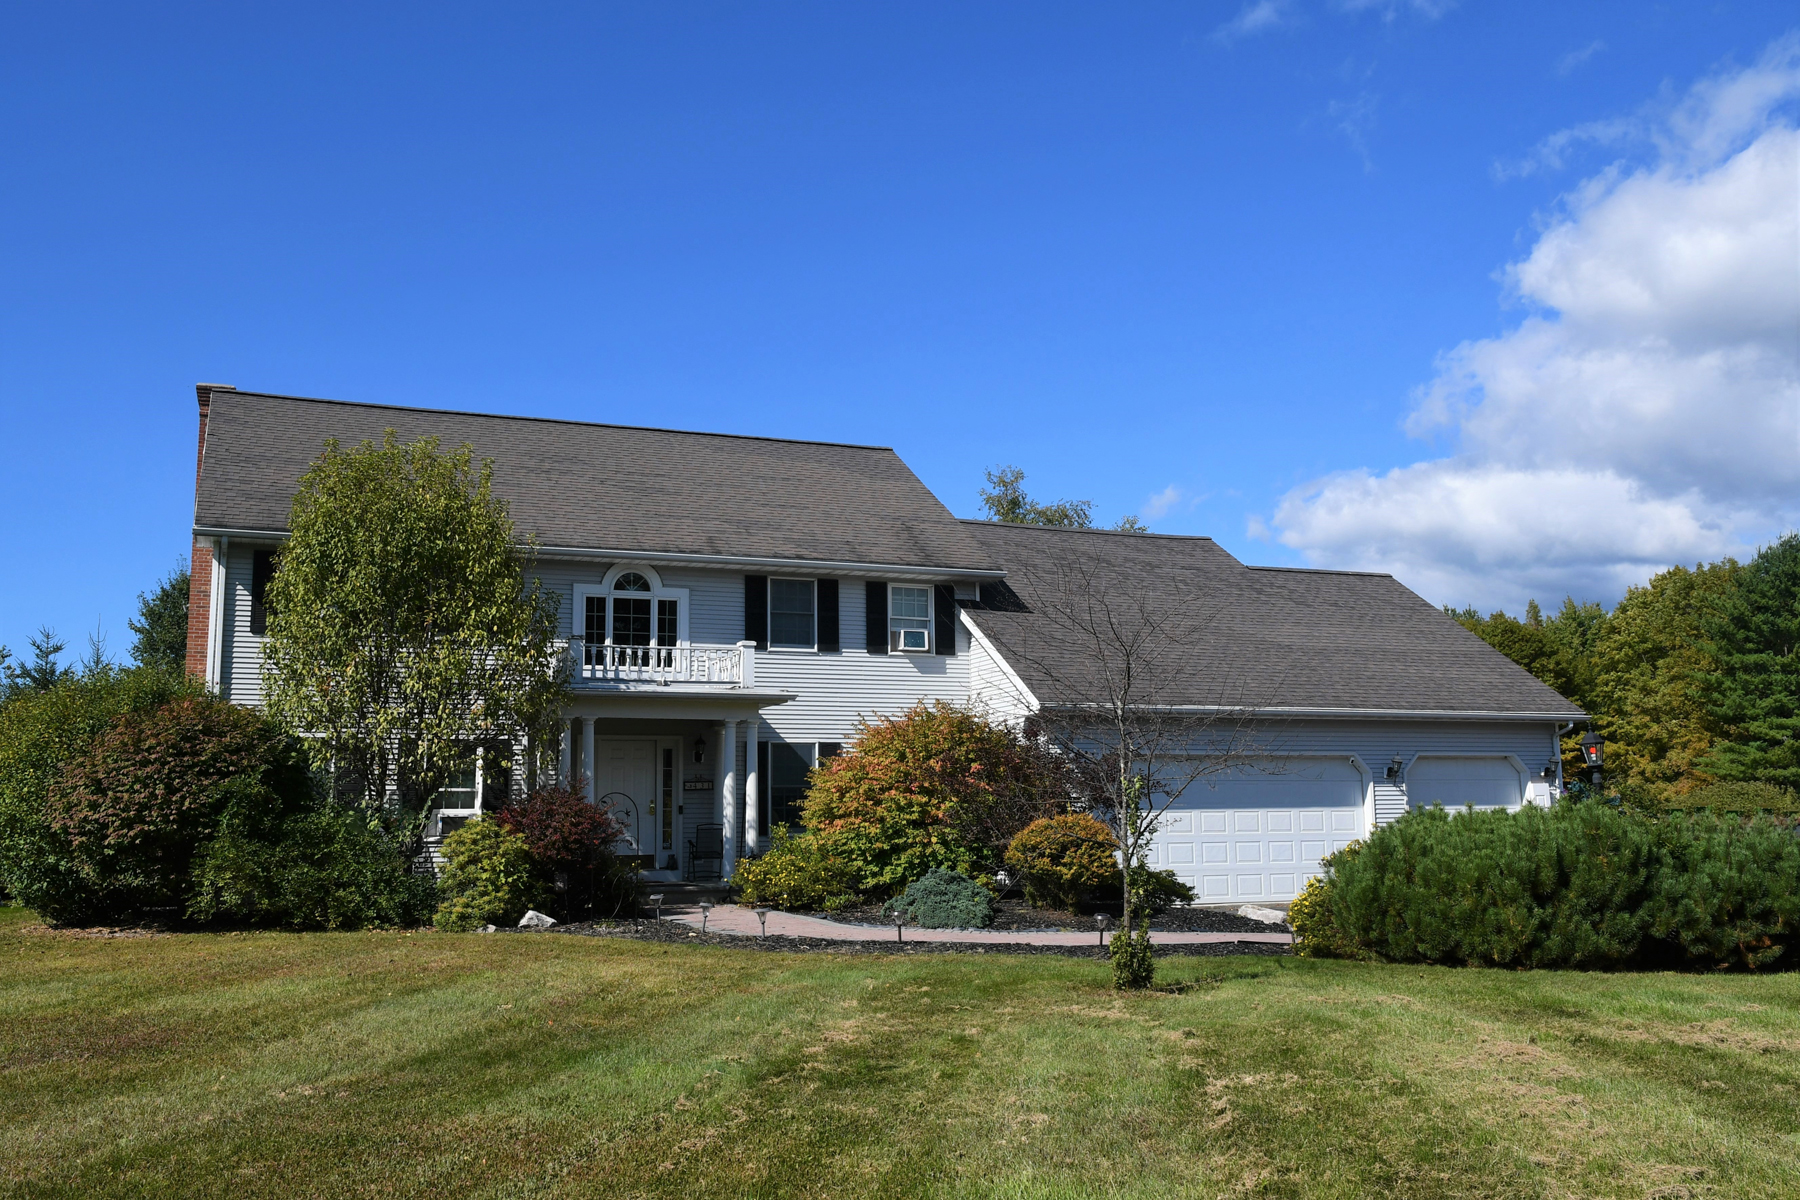 Single Family Homes for Sale at Feels Like Home 431 Grover Drive Rutland Town, Vermont 05701 United States